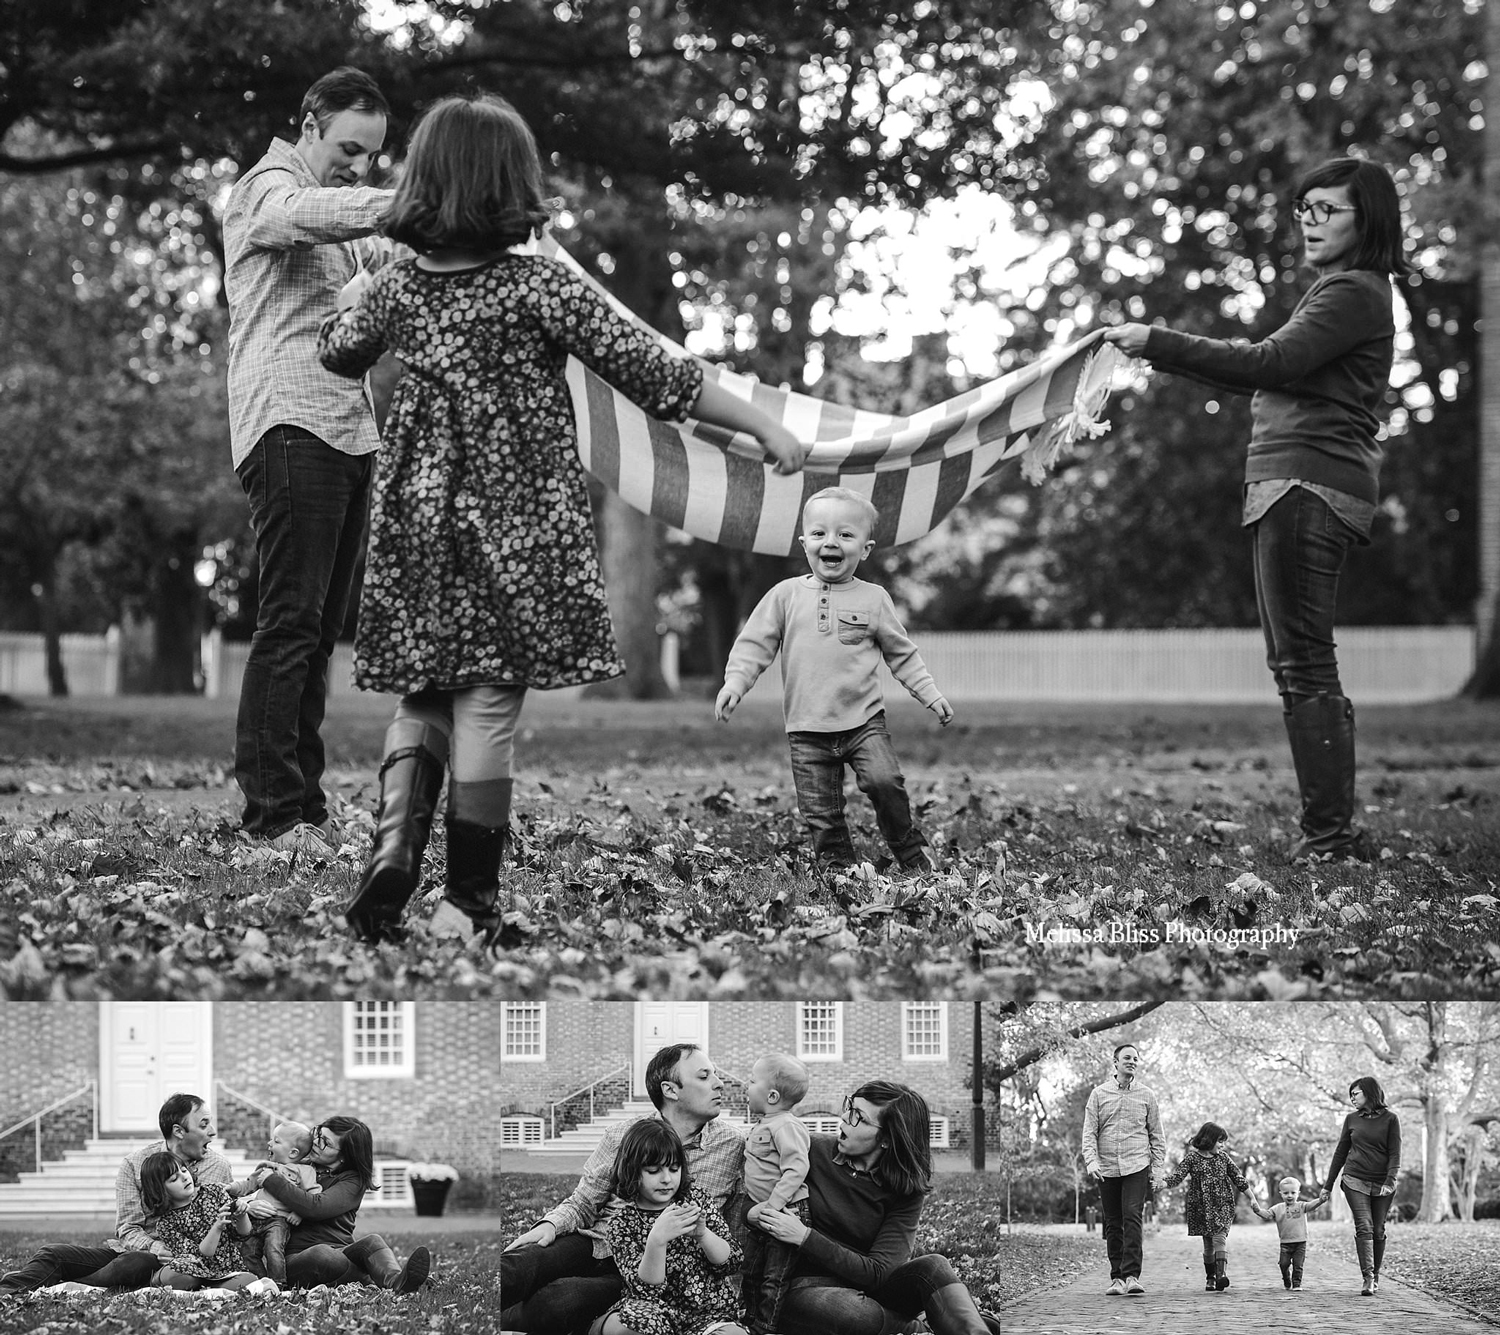 fun-candid-family-photos-in-williamsburg-va-by-melissa-bliss-photography-norfolk-photographer.jpg